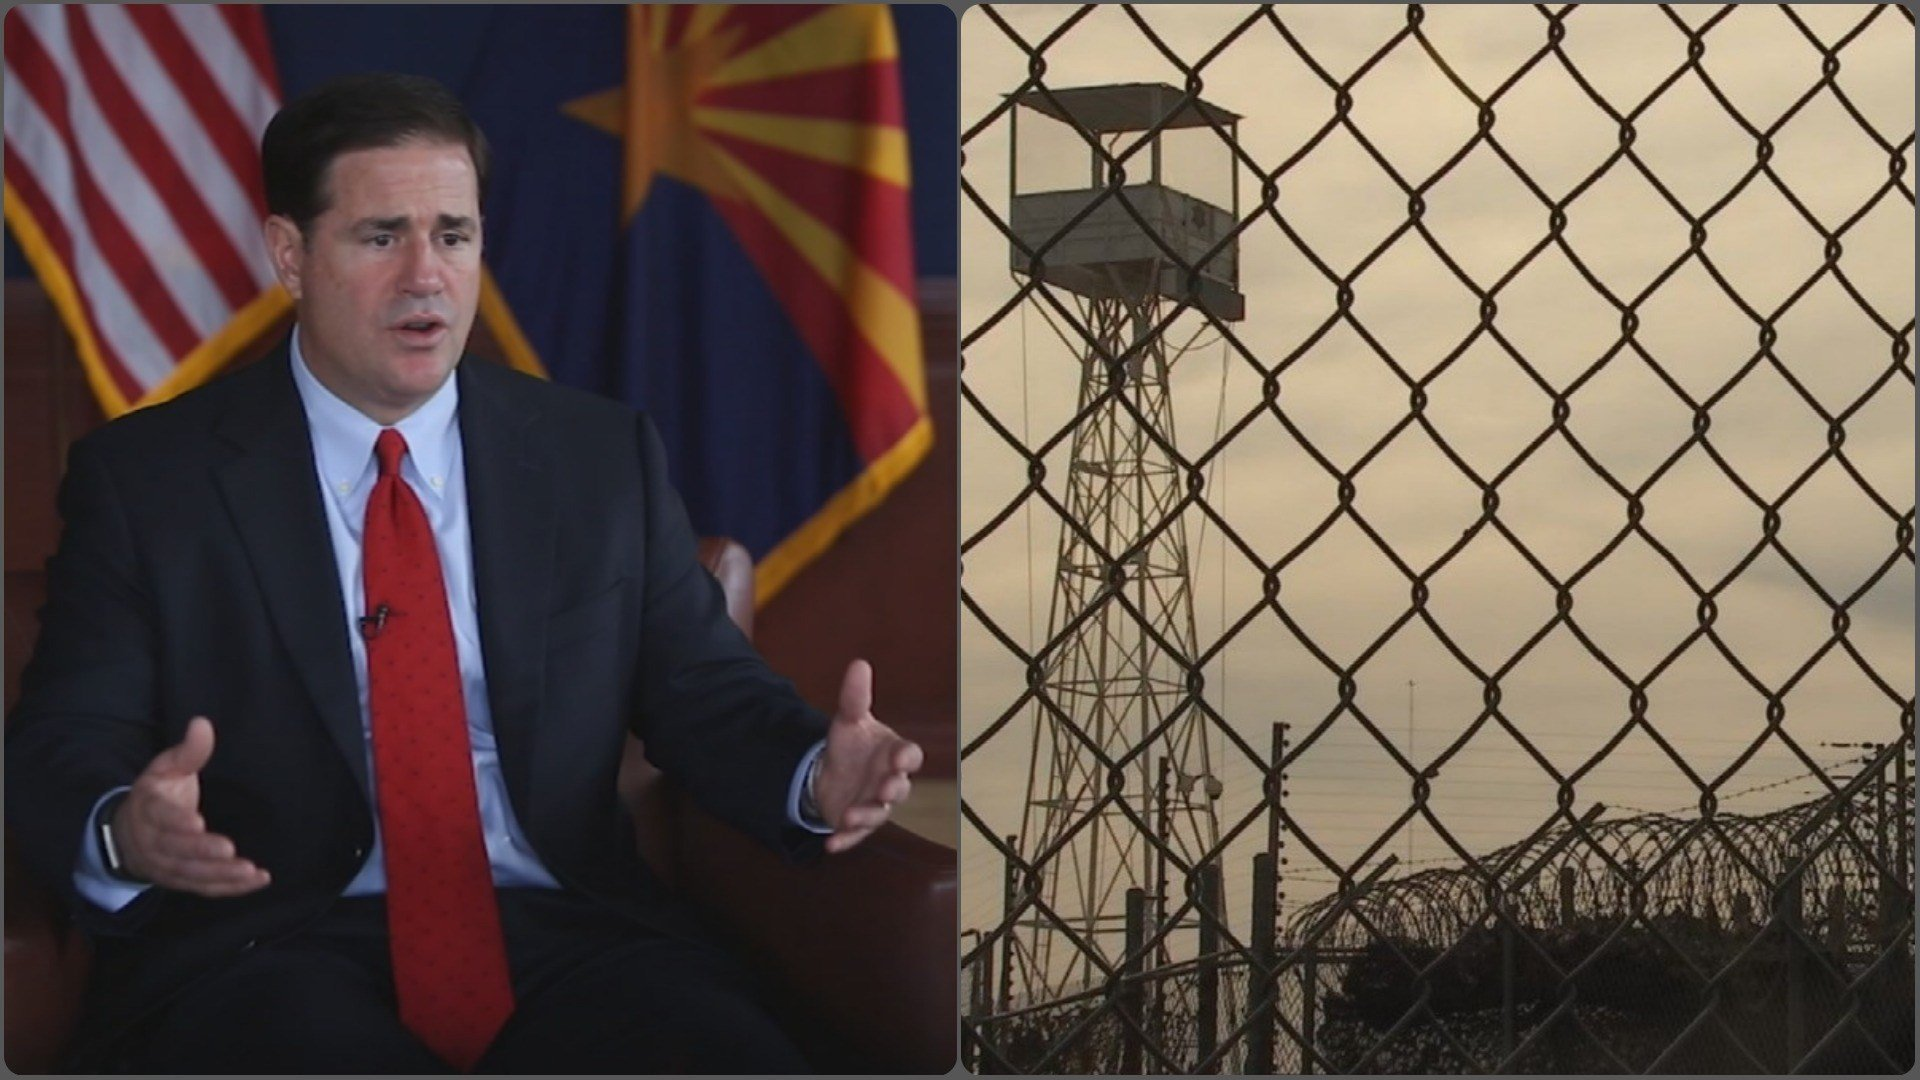 Gov. Doug Ducey proposed the site of former Tent cCity jail be turned into an inmate training facility. (Source: 3TV/CBS 5)